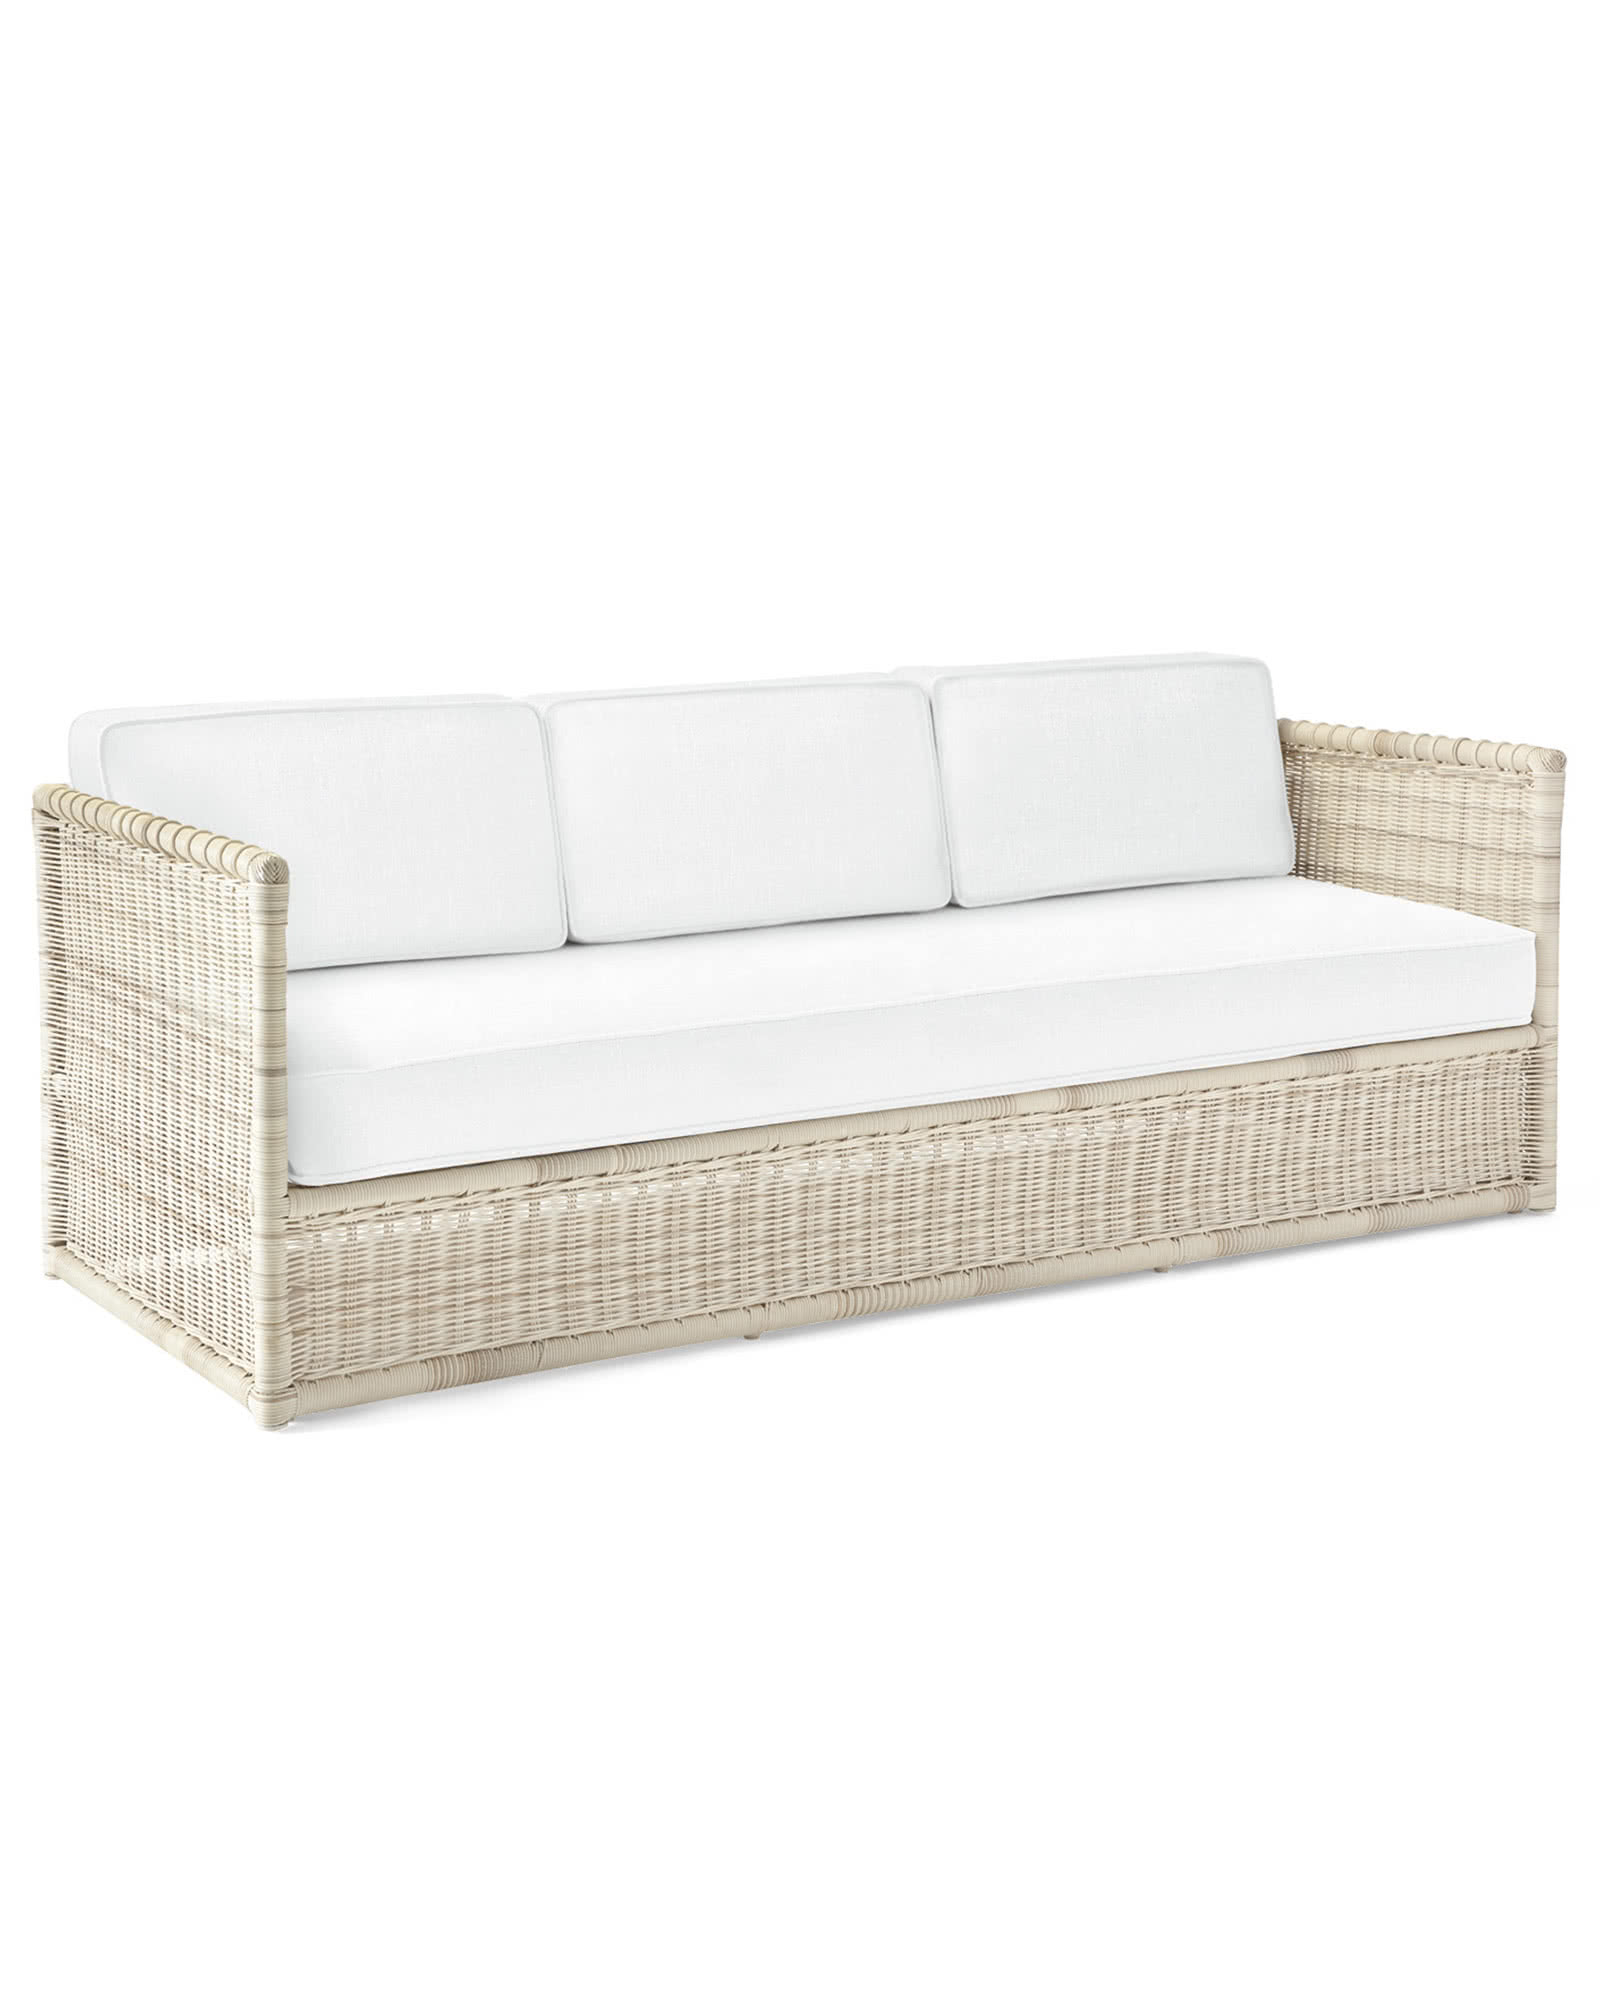 Pacifica Sofa - Driftwood,